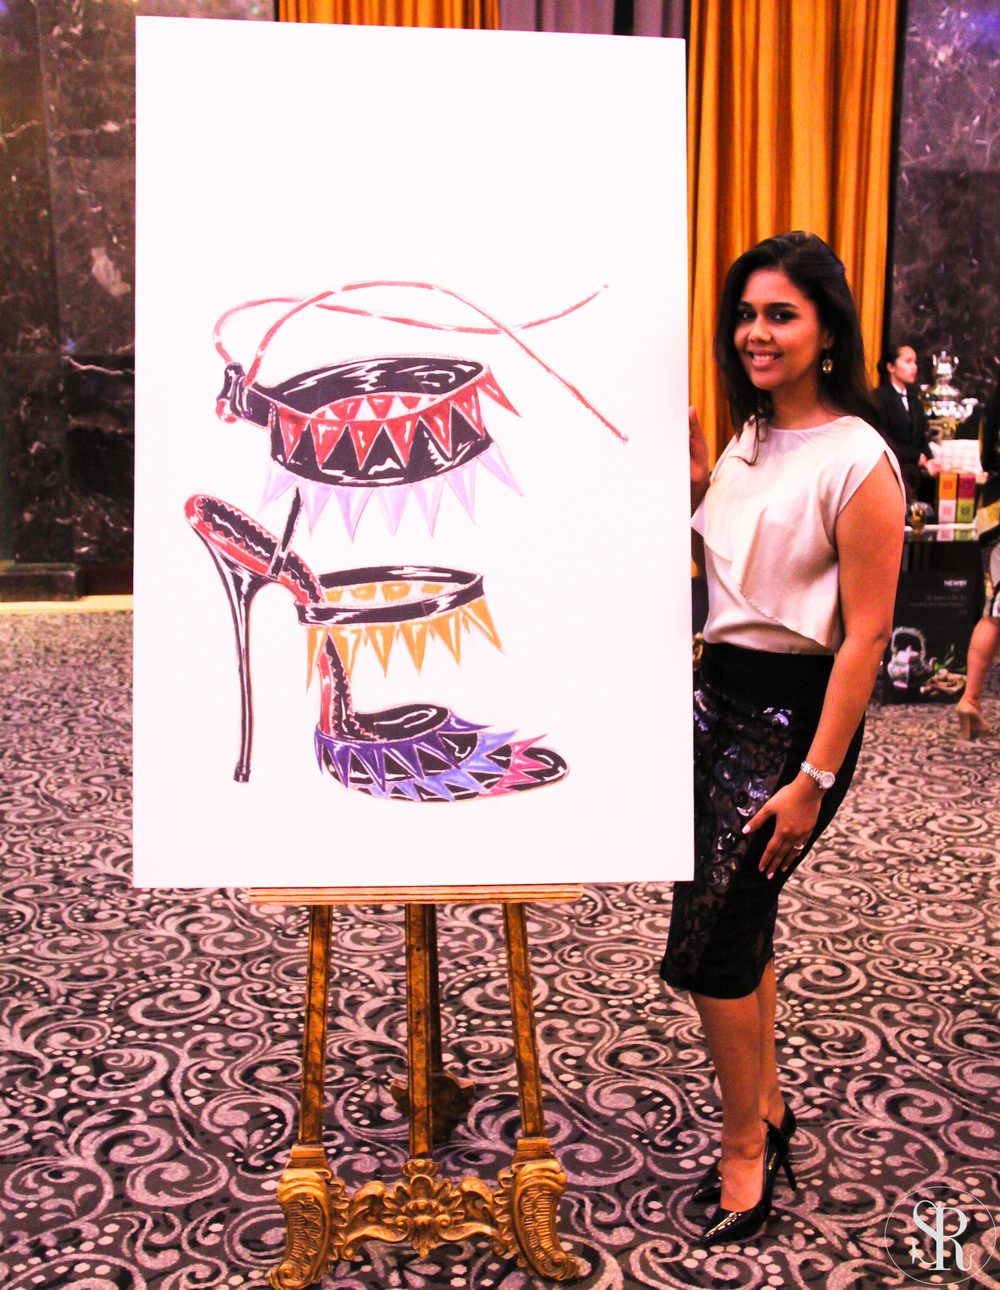 VIP launch of MANOLO BLAHNIK collection Fashion Afternoon Tea by Raffles Dubai-4190.jpg